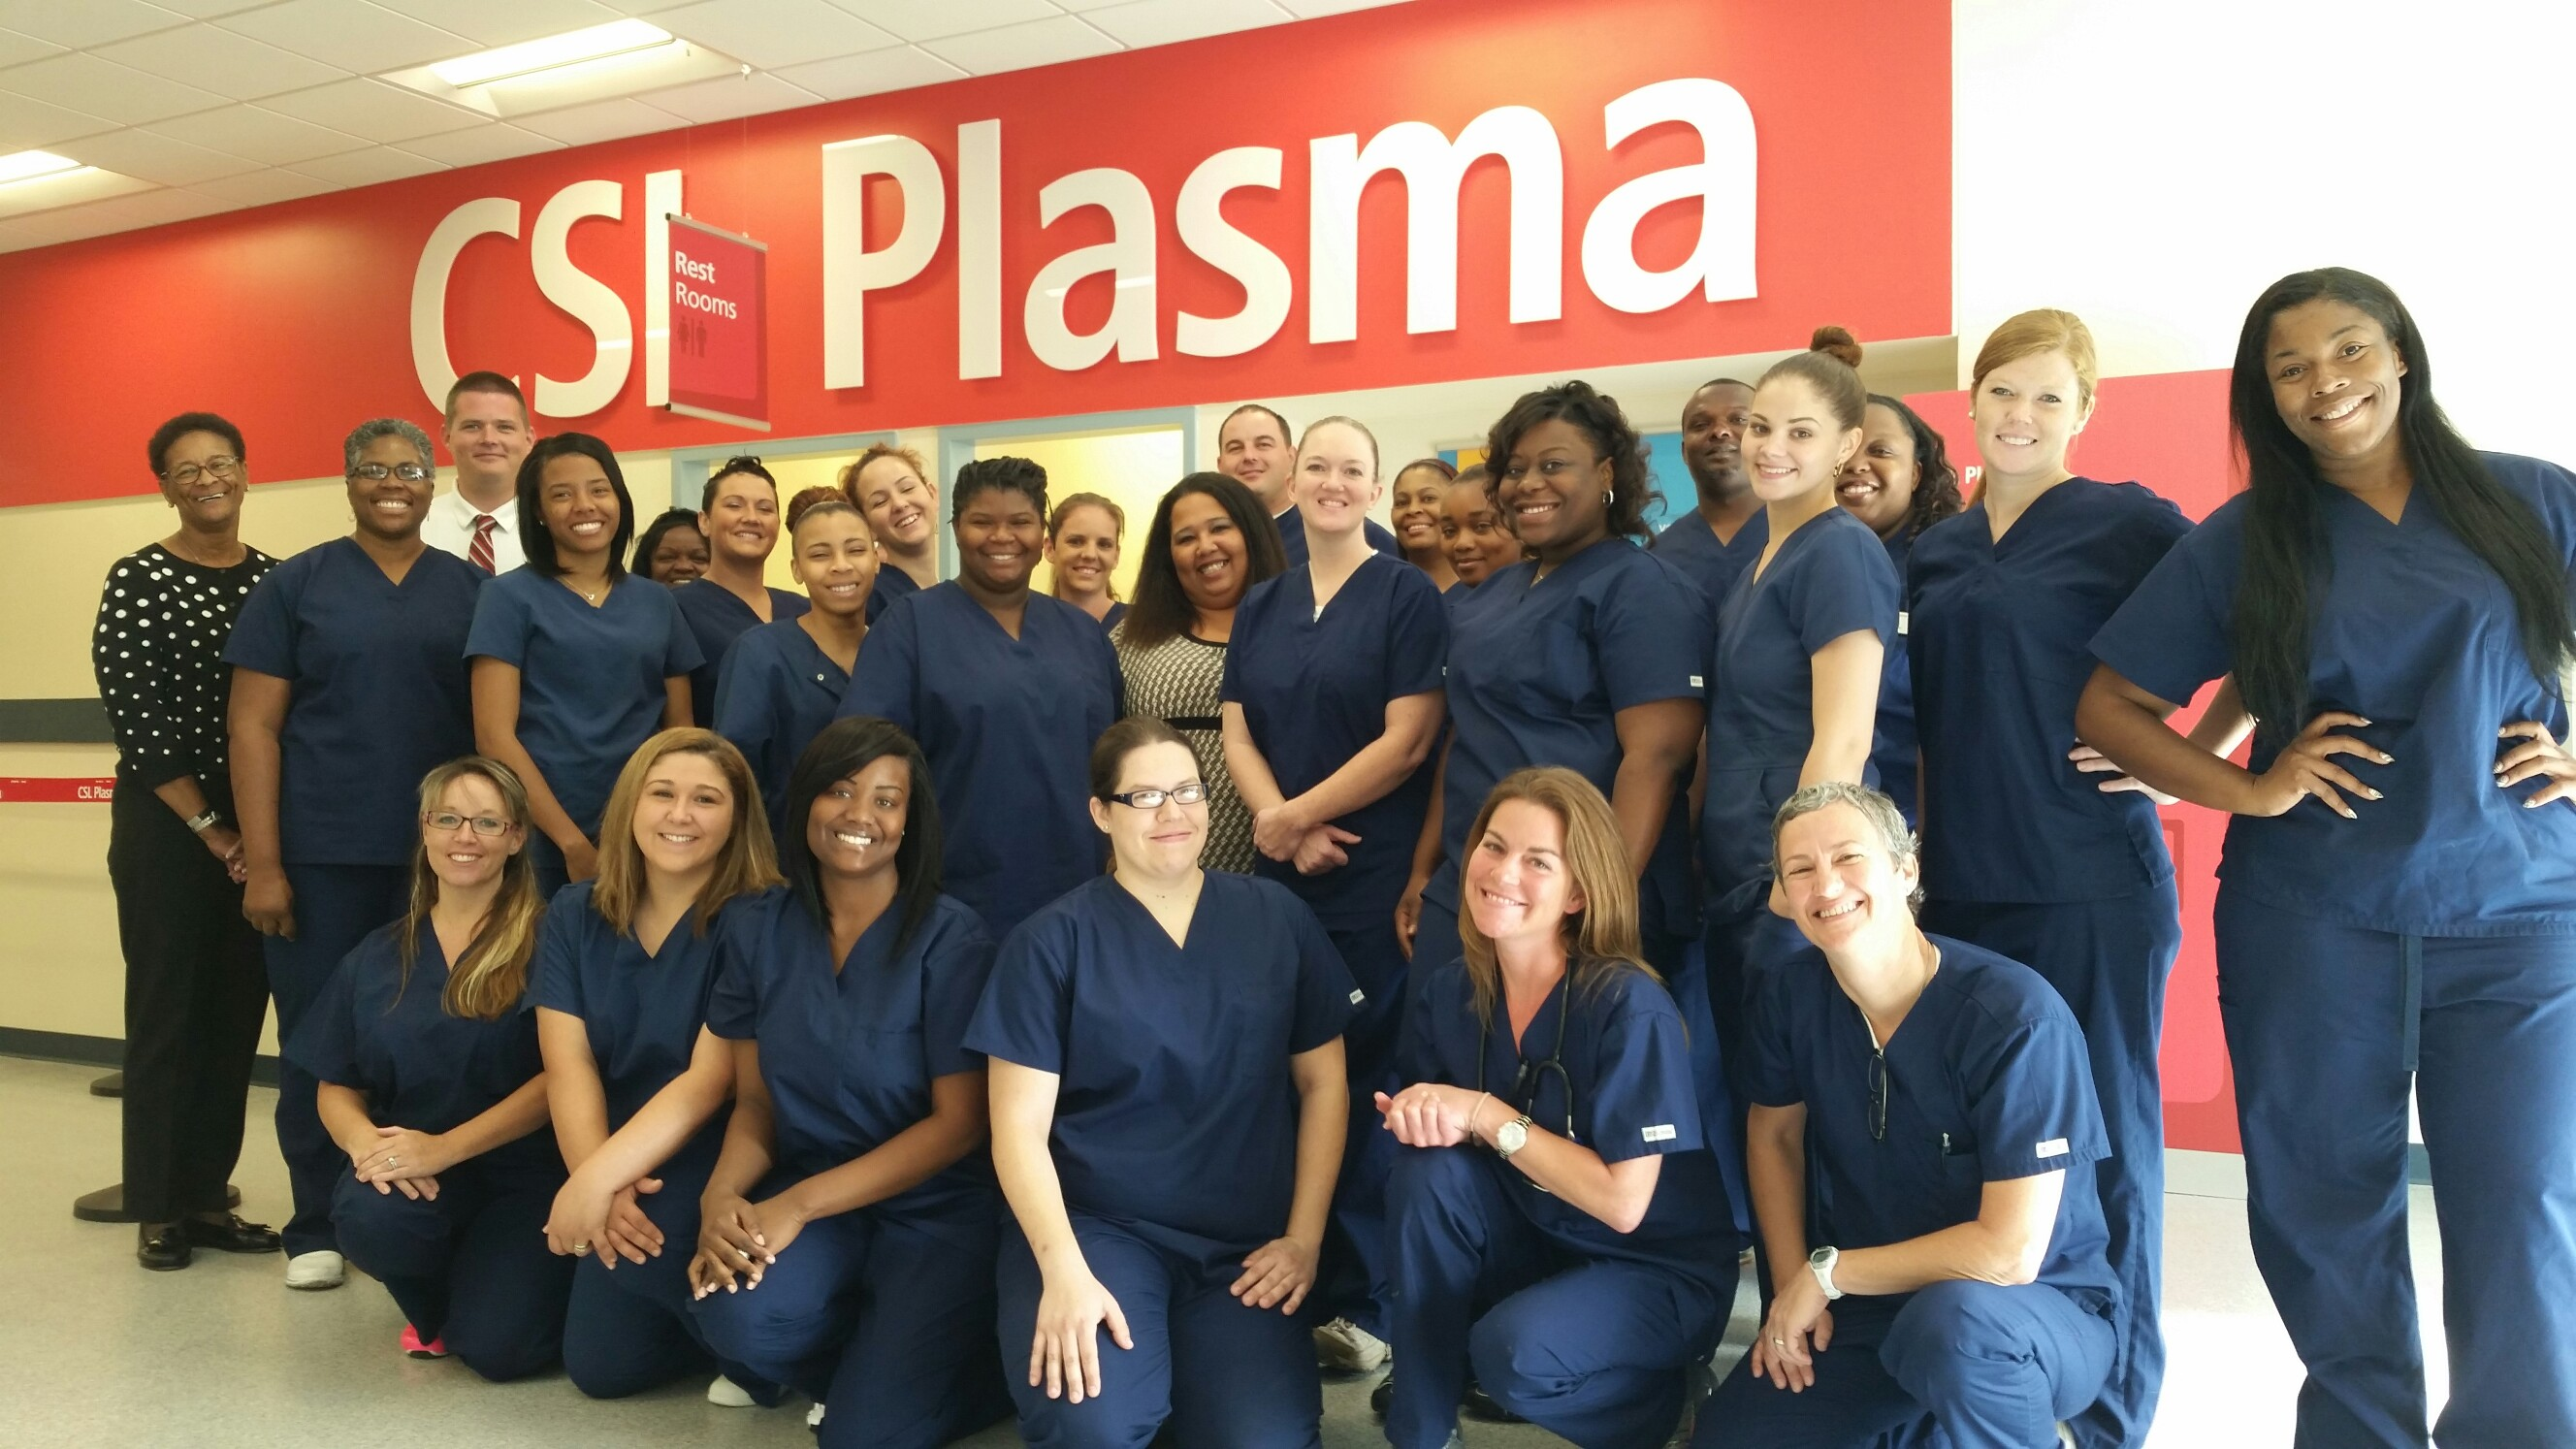 CSL plasma 9245 Highway 49, Gulfport, MS 39503 - YP com